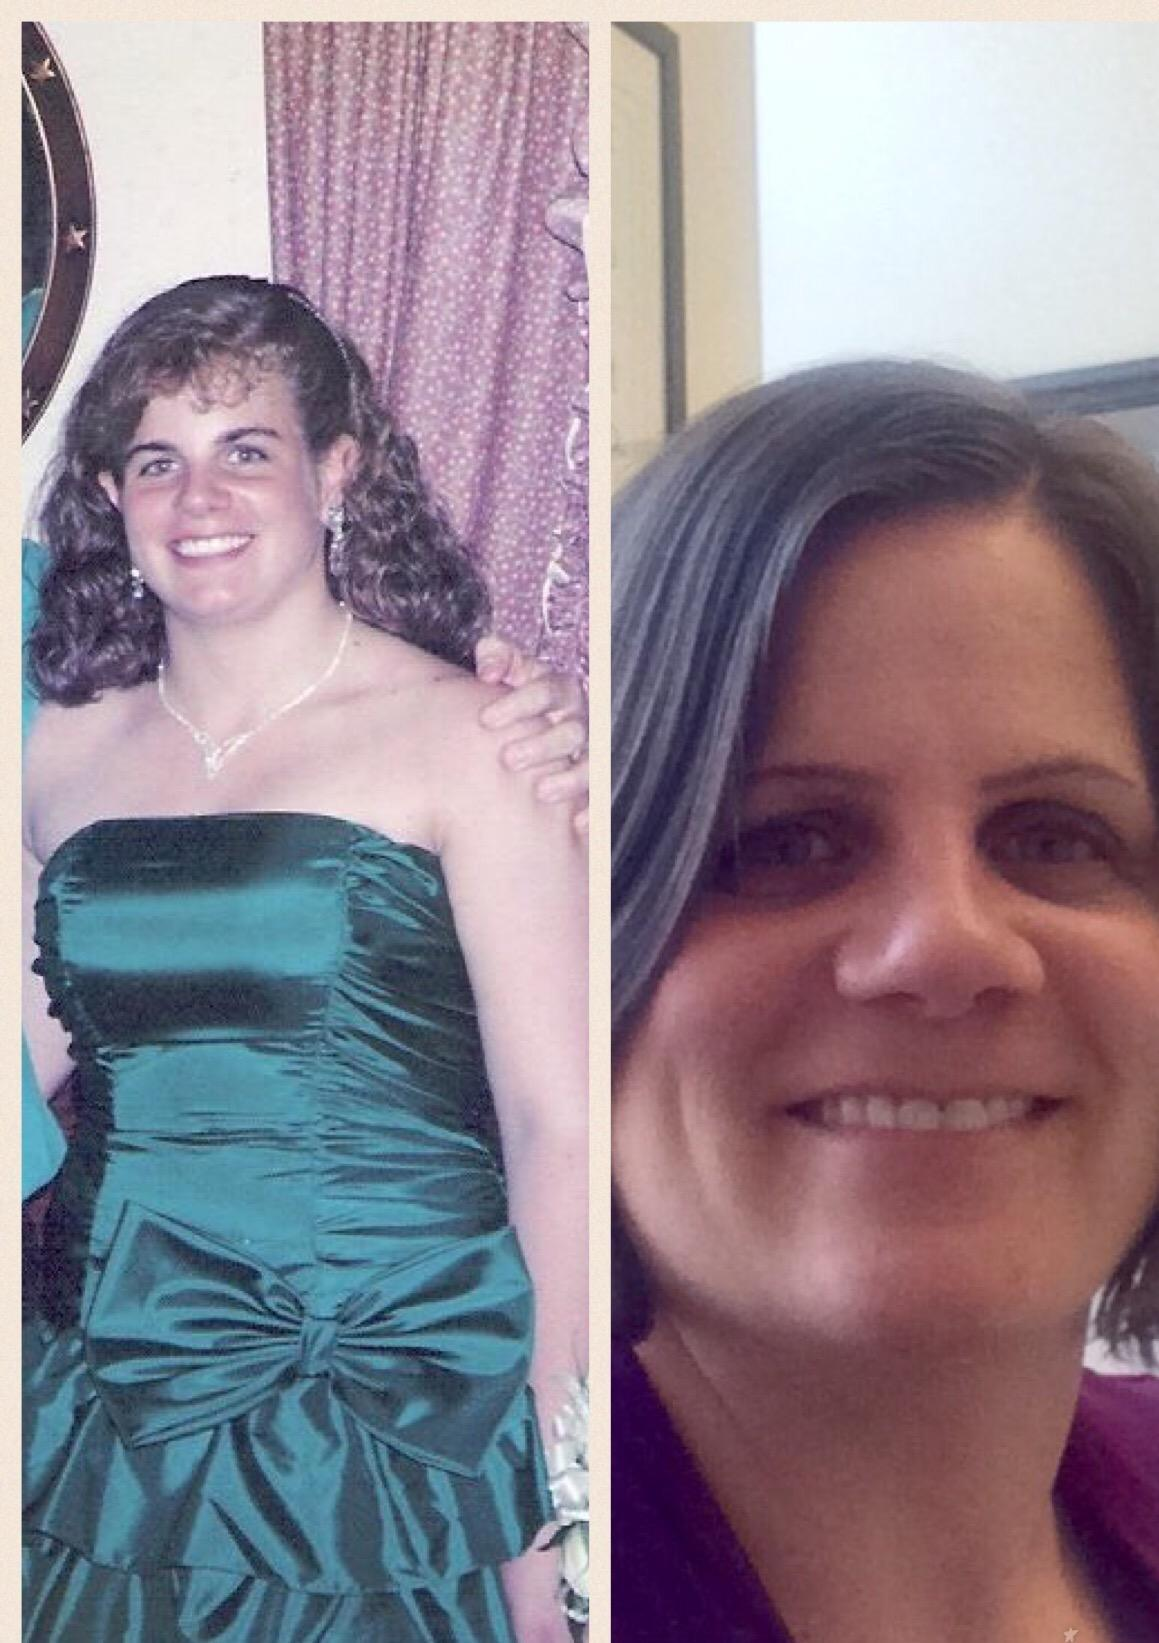 Alumna+Associate+Dean+Lisa+Redding+%2789+at+the+high+school%27s+Prom+in+1989+%28left%29+and+today+%28right%29.++